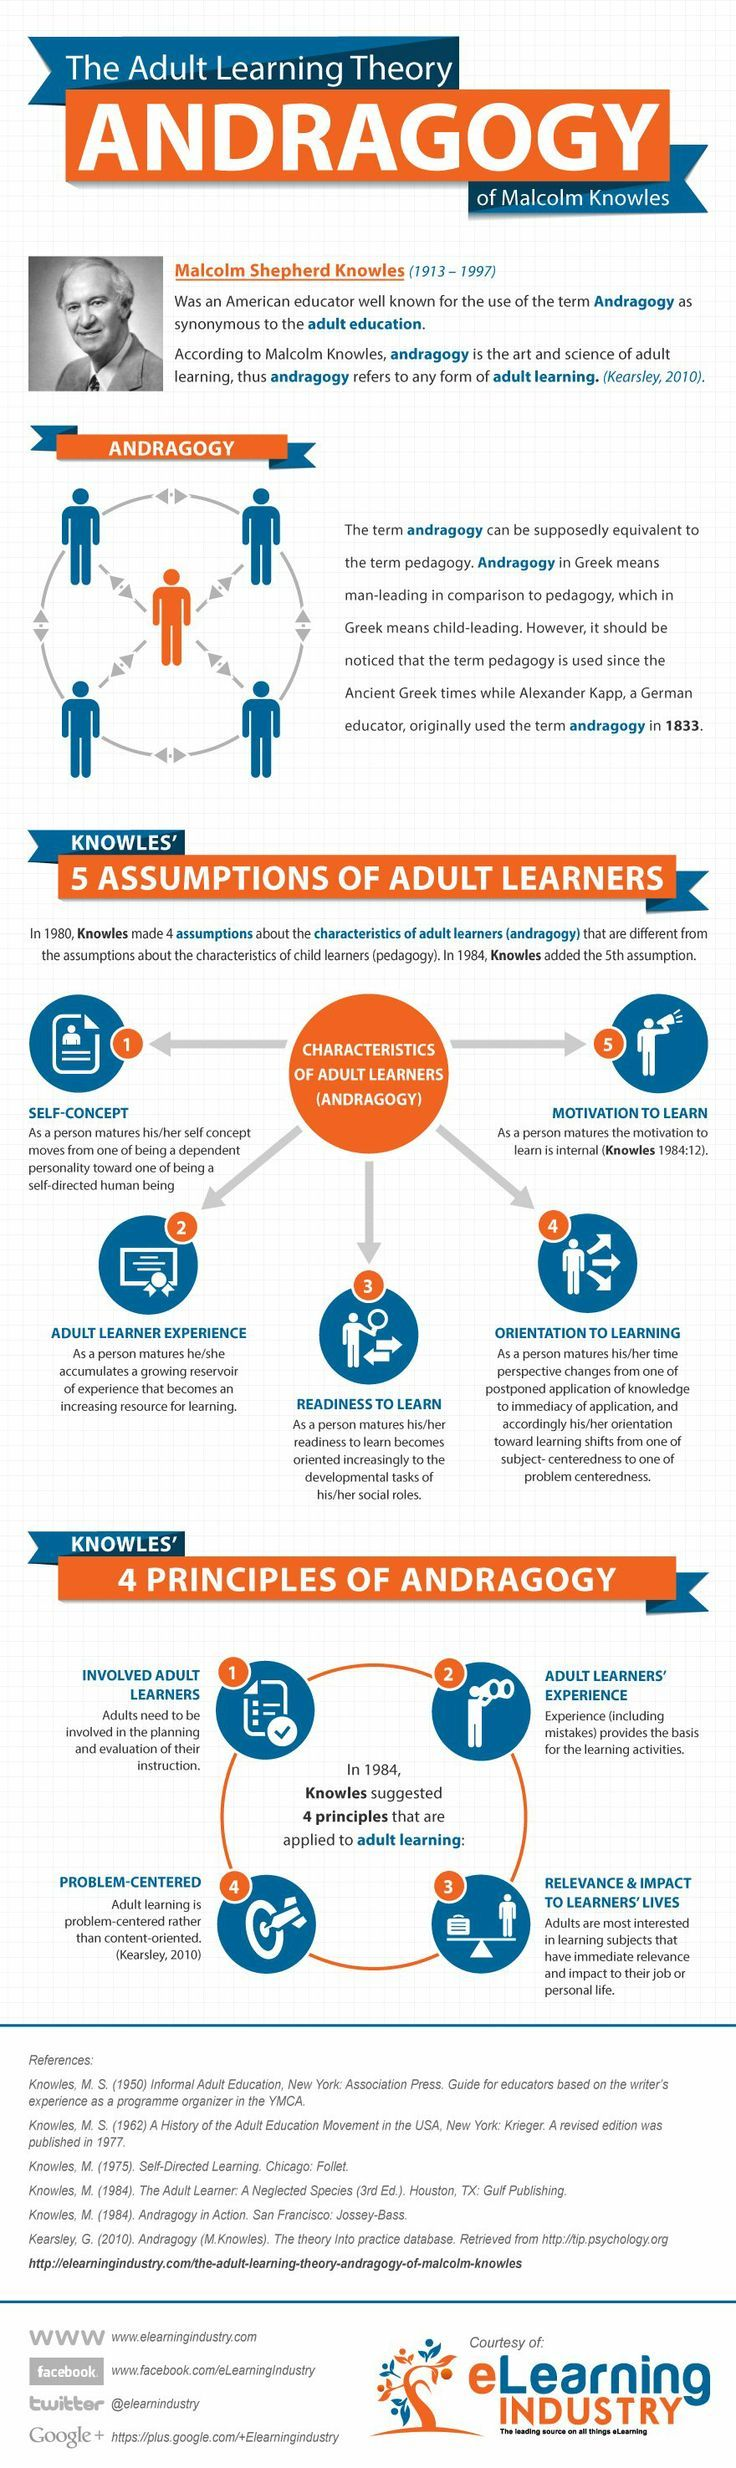 adult learning theory andragogy essay More essay examples on adult learning rubric adult learning, like other levels of education, is a complex process that is dependent on the features the same concepts - that is of self-direction and life-long learning - constitute the basics of knowles' theory of adult learning which is andragogy.